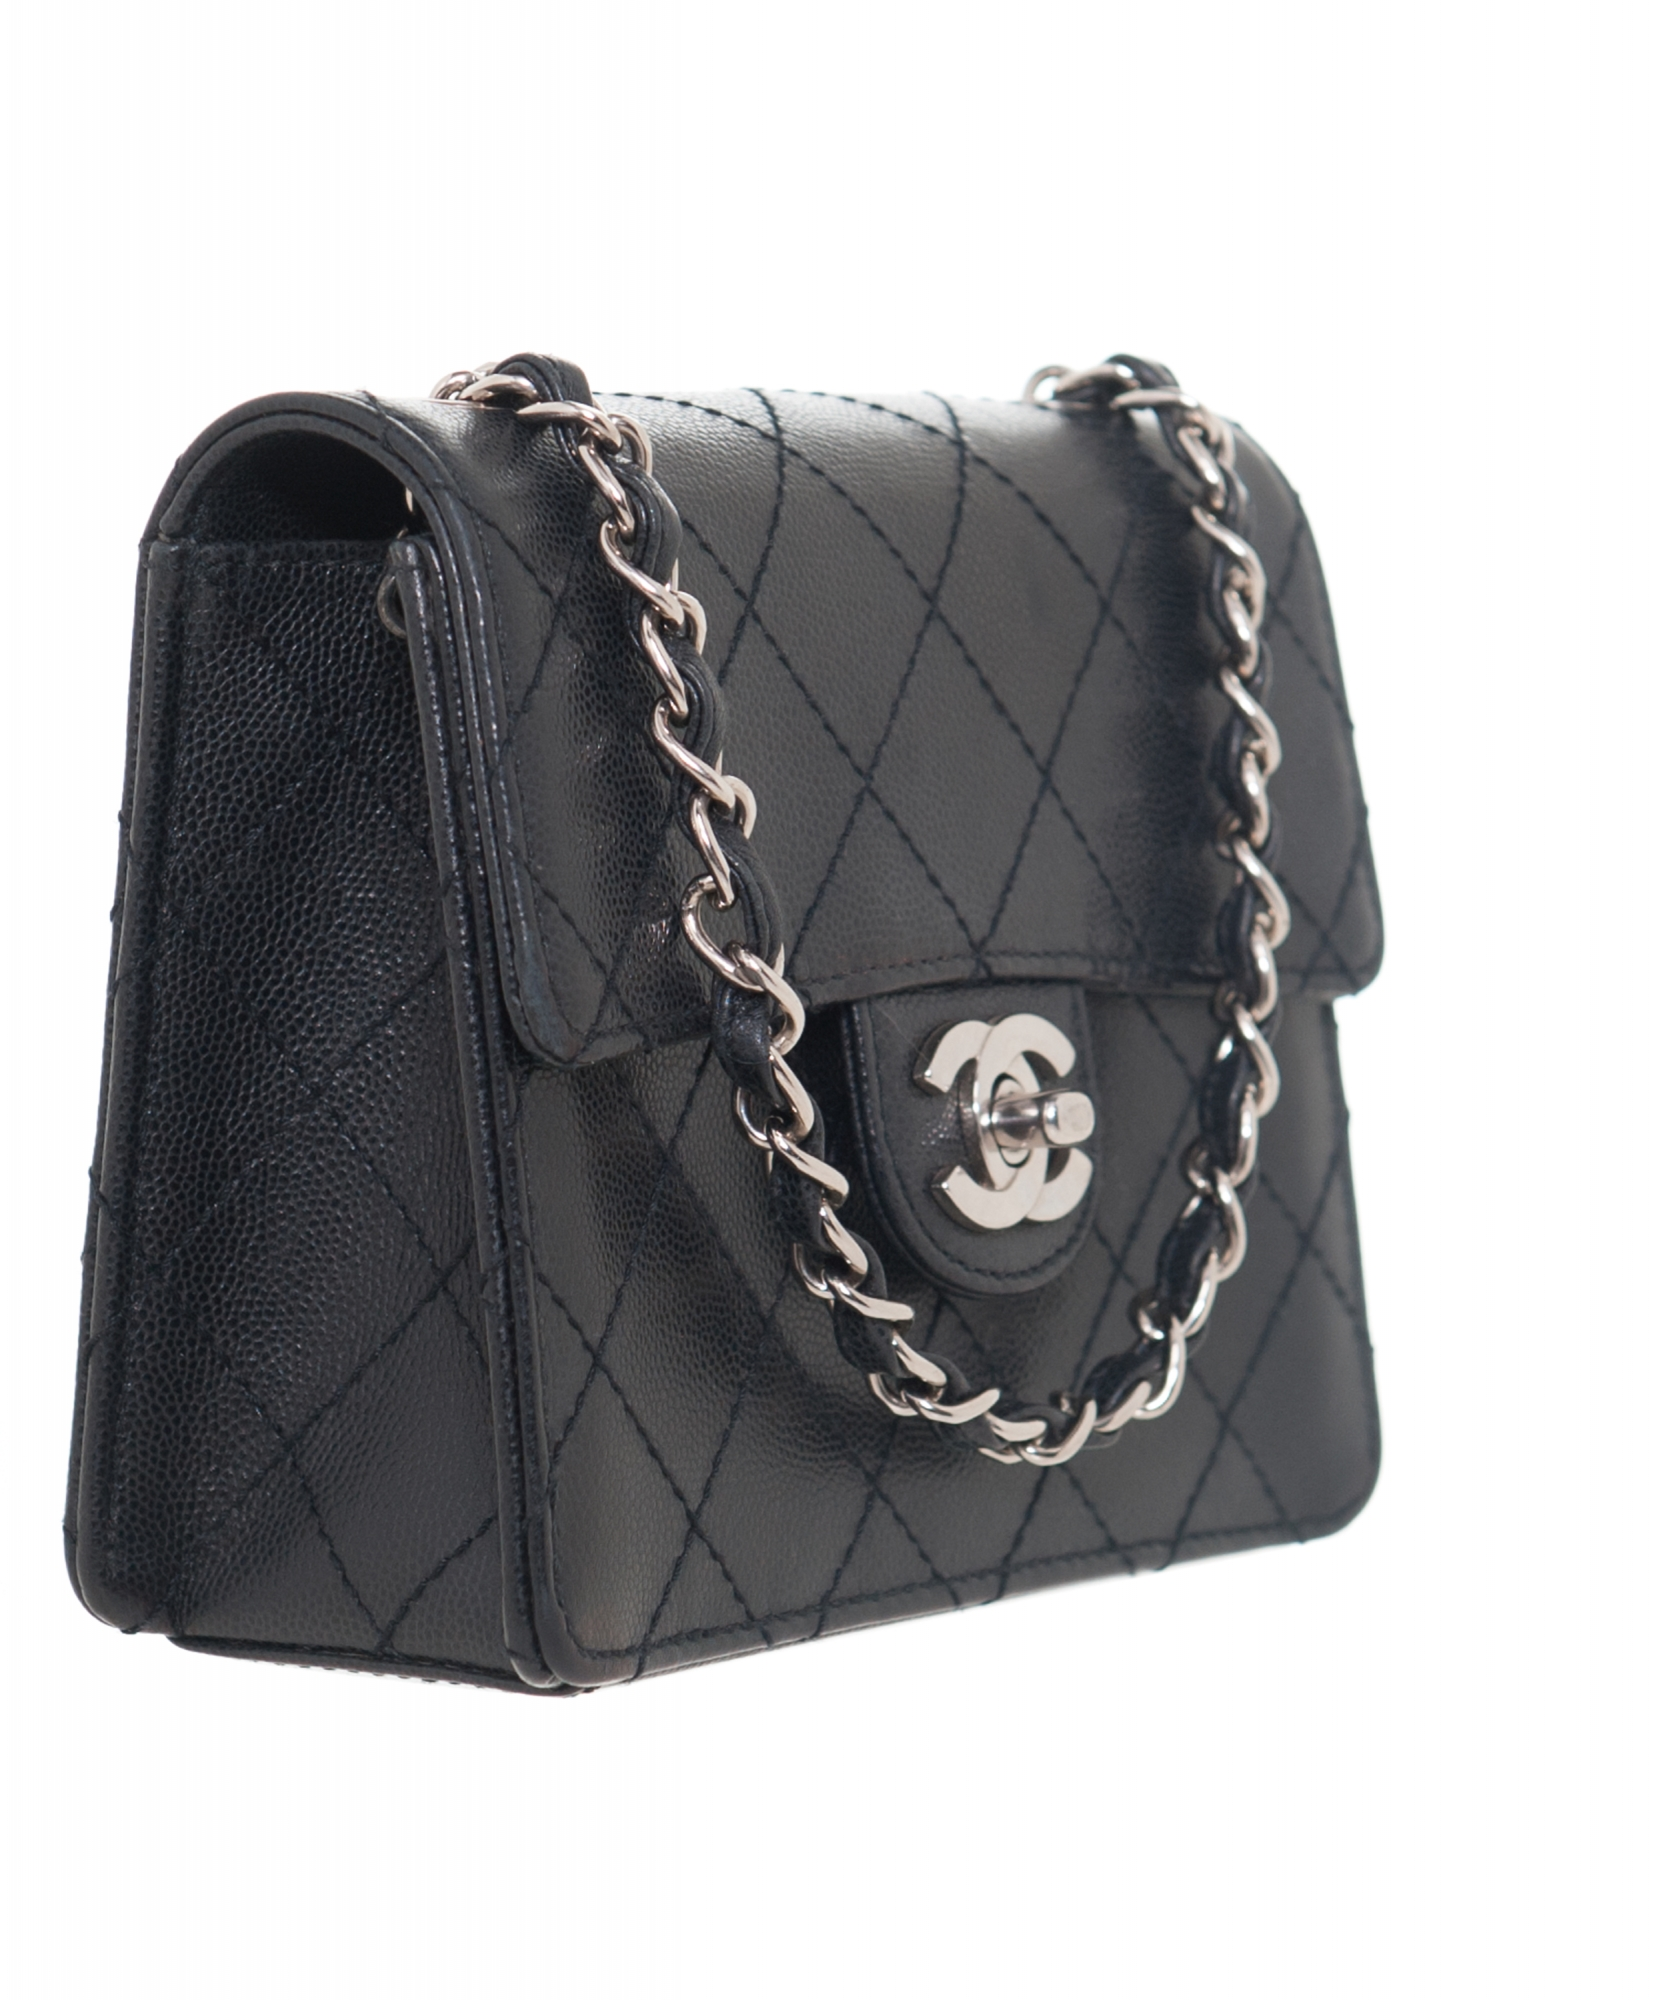 2544df523e98 Chanel Vintage Black Caviar Quilted Mini Flap Bag | La Doyenne